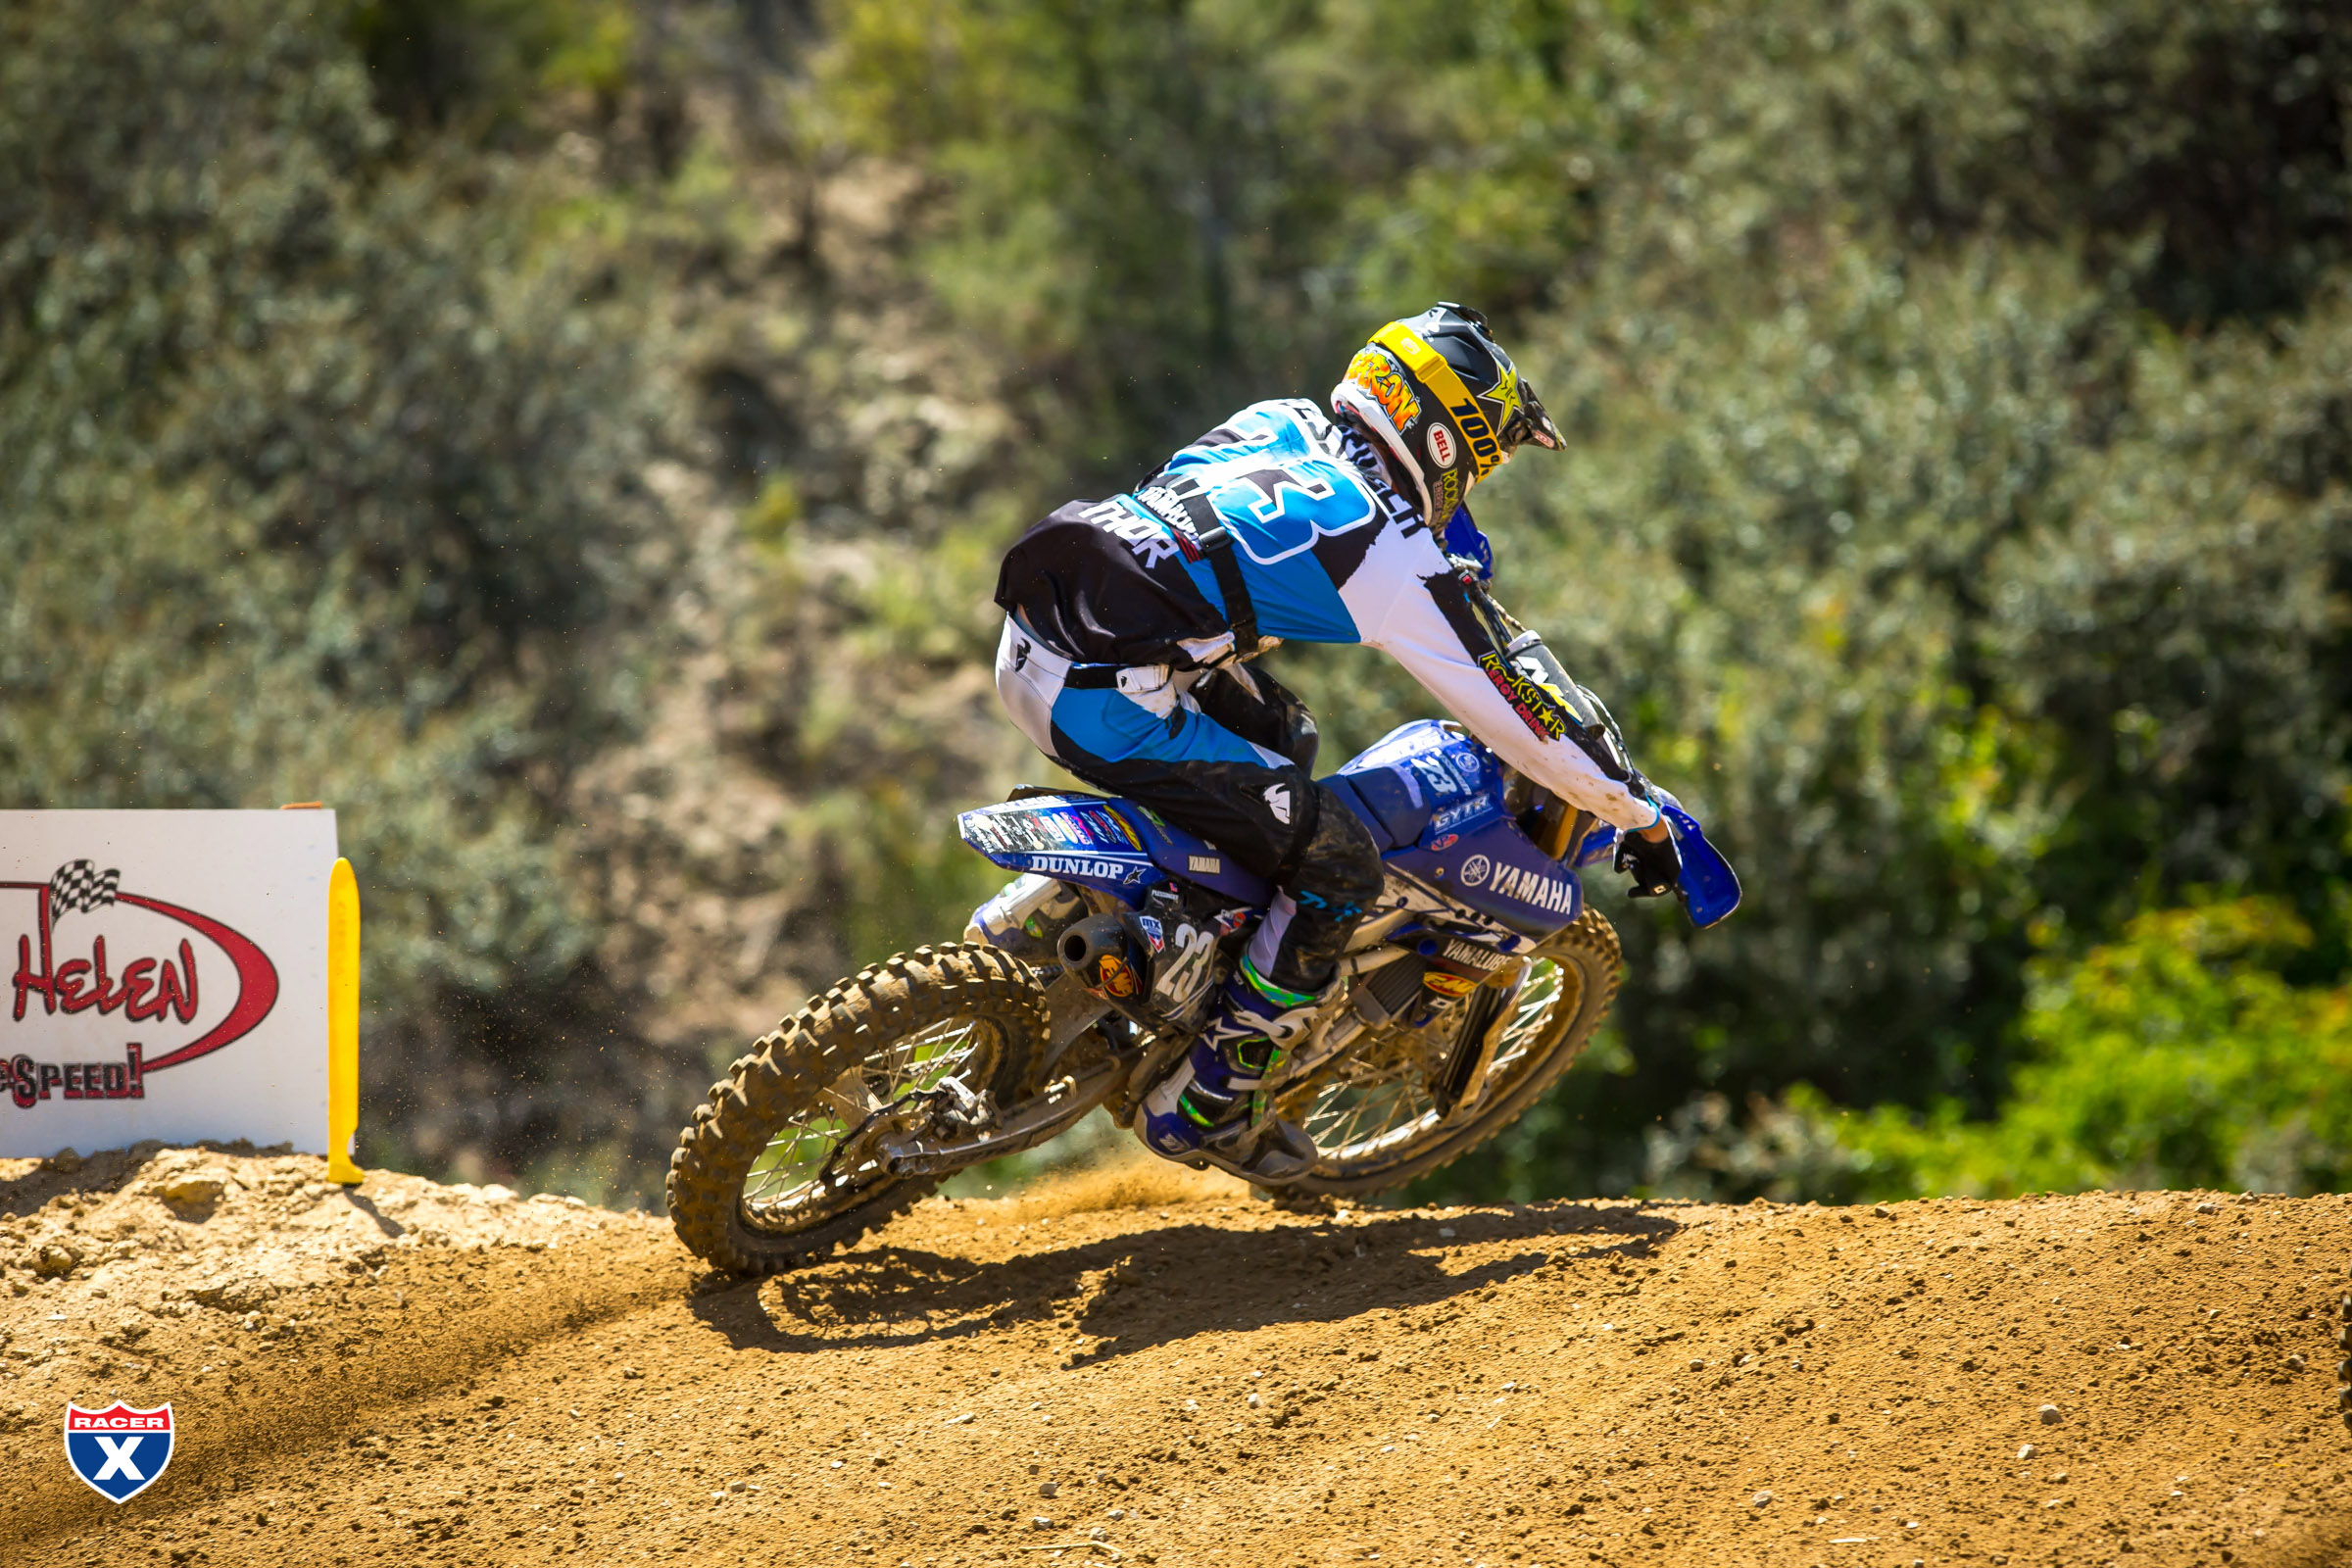 Plessinger_MX17_GlenHelen_RS_0741